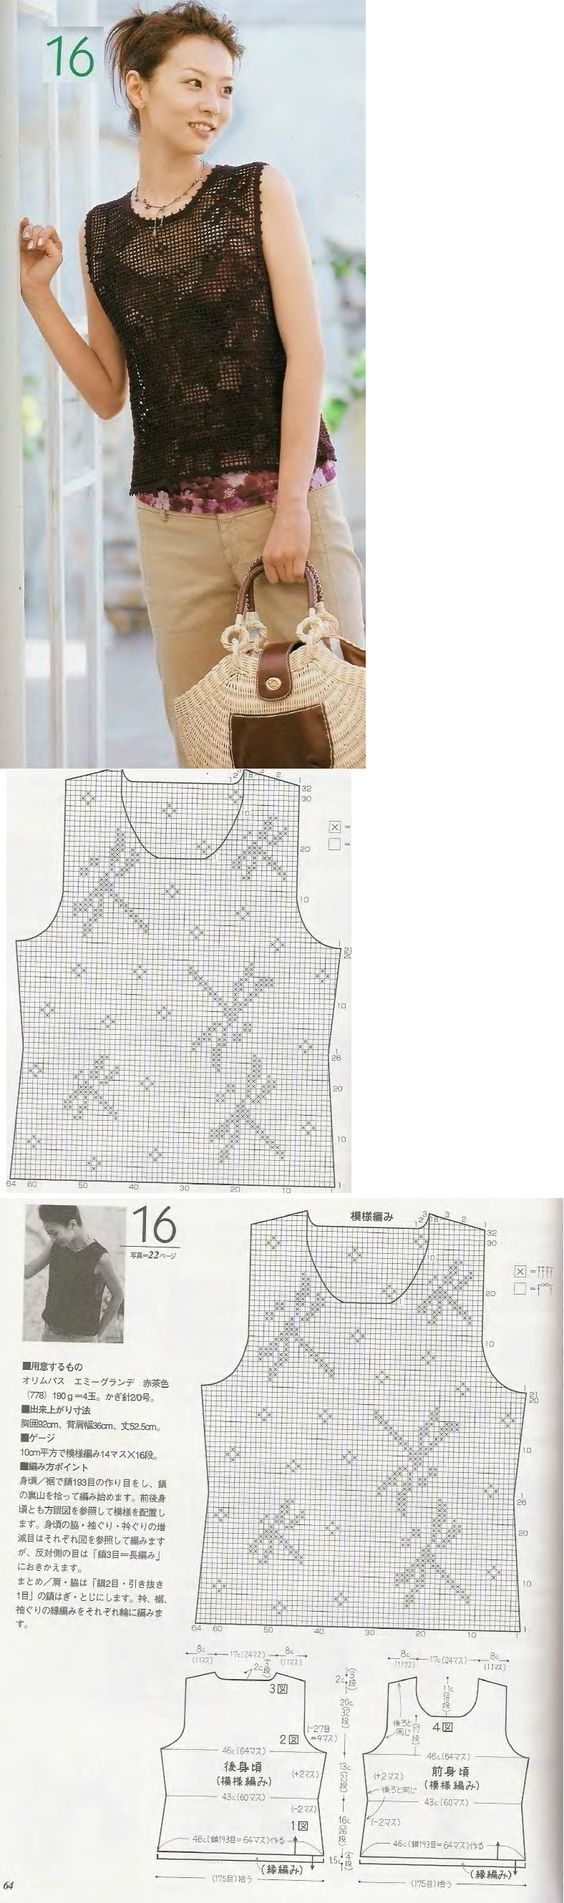 the dragonfly top - summery crochet filet. Japanese pattern with diagrams. One size.. requires some figuring.: